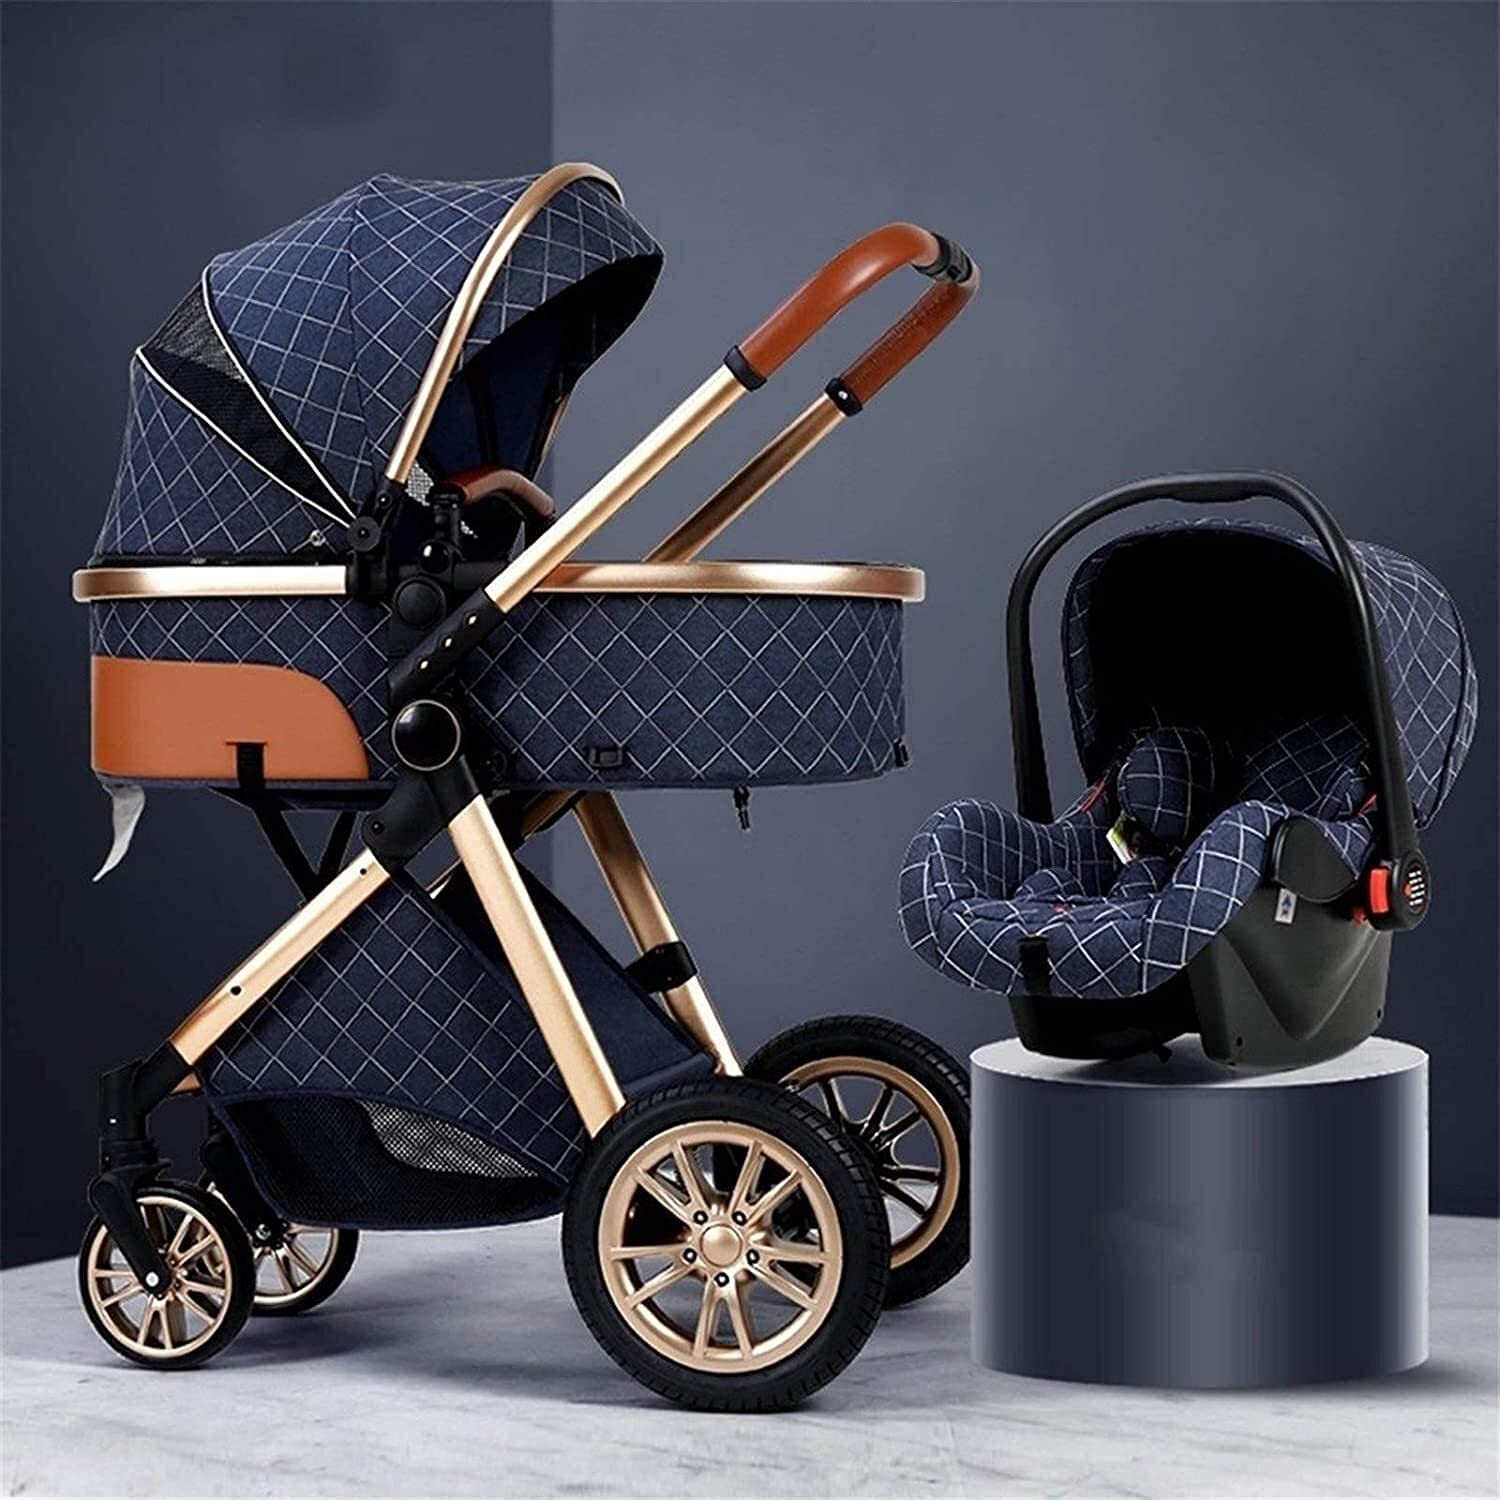 TSHAOSHUNHT Ranking TOP1 Baby Stroller Pushchair for Co Toddler Newborn - Jacksonville Mall and